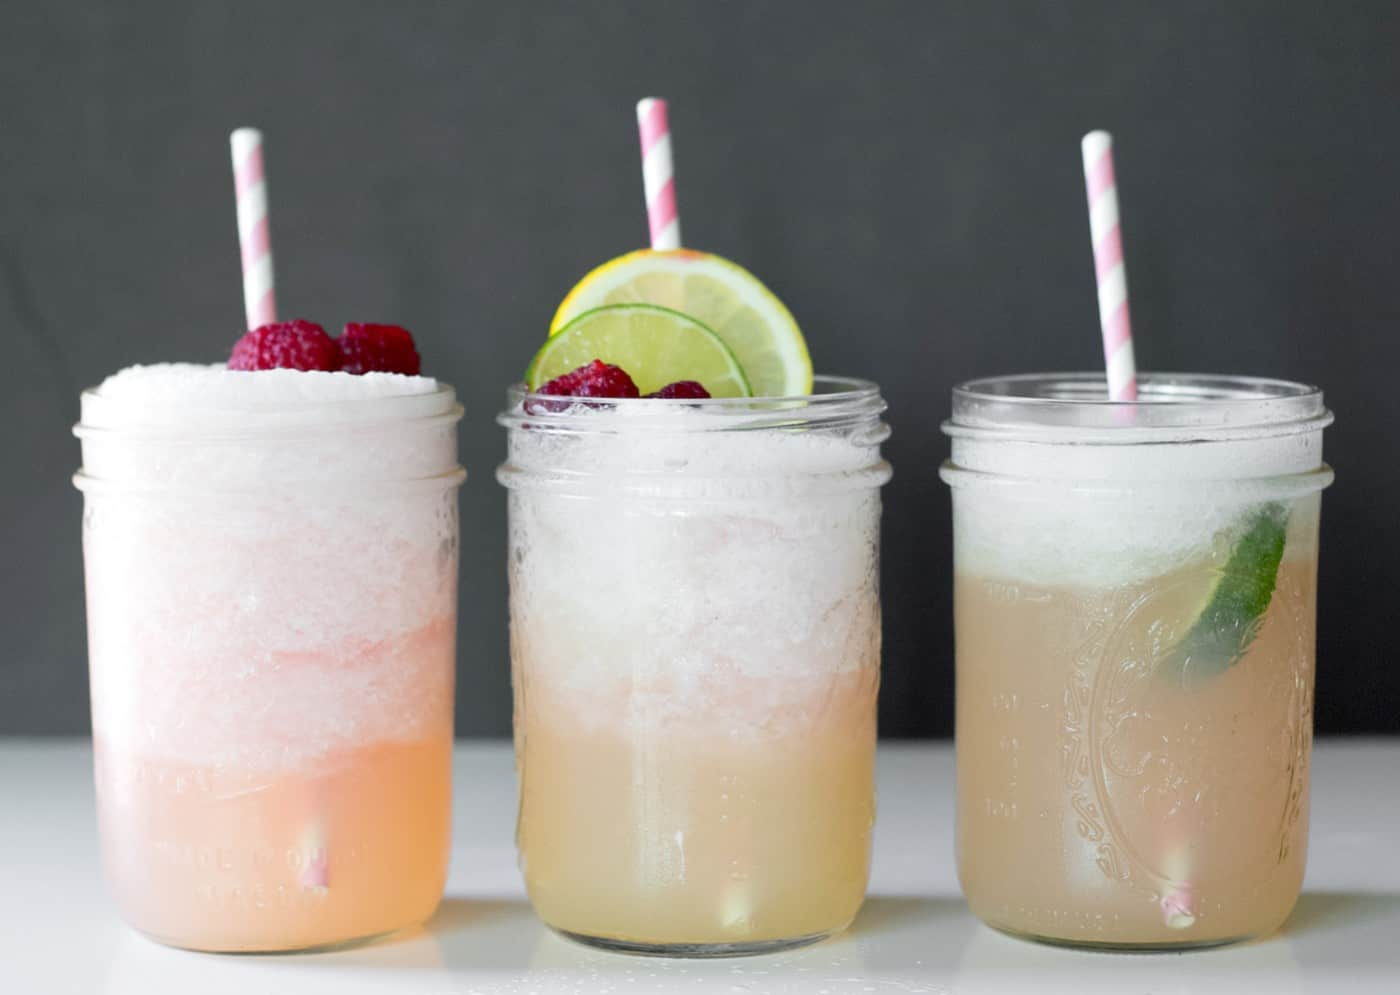 This margaritas recipe always gets compliments! The raspberry lemonade gives it the perfect amount of sweet and tart. So refreshing and perfect for summer!